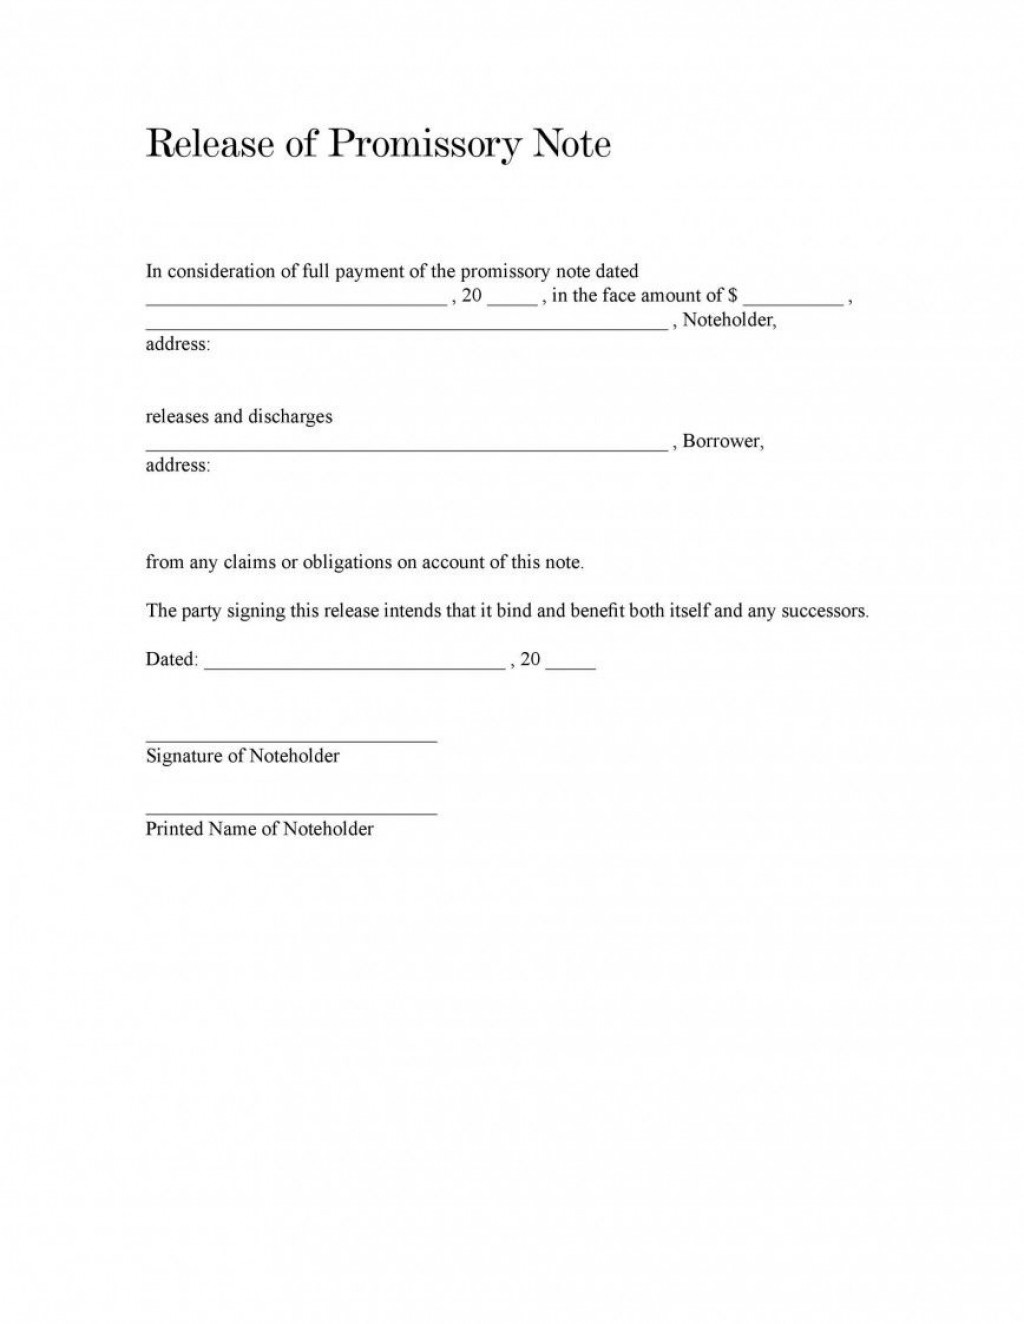 001 Remarkable Template For Promissory Note High Definition  Personal Loan Free UkLarge